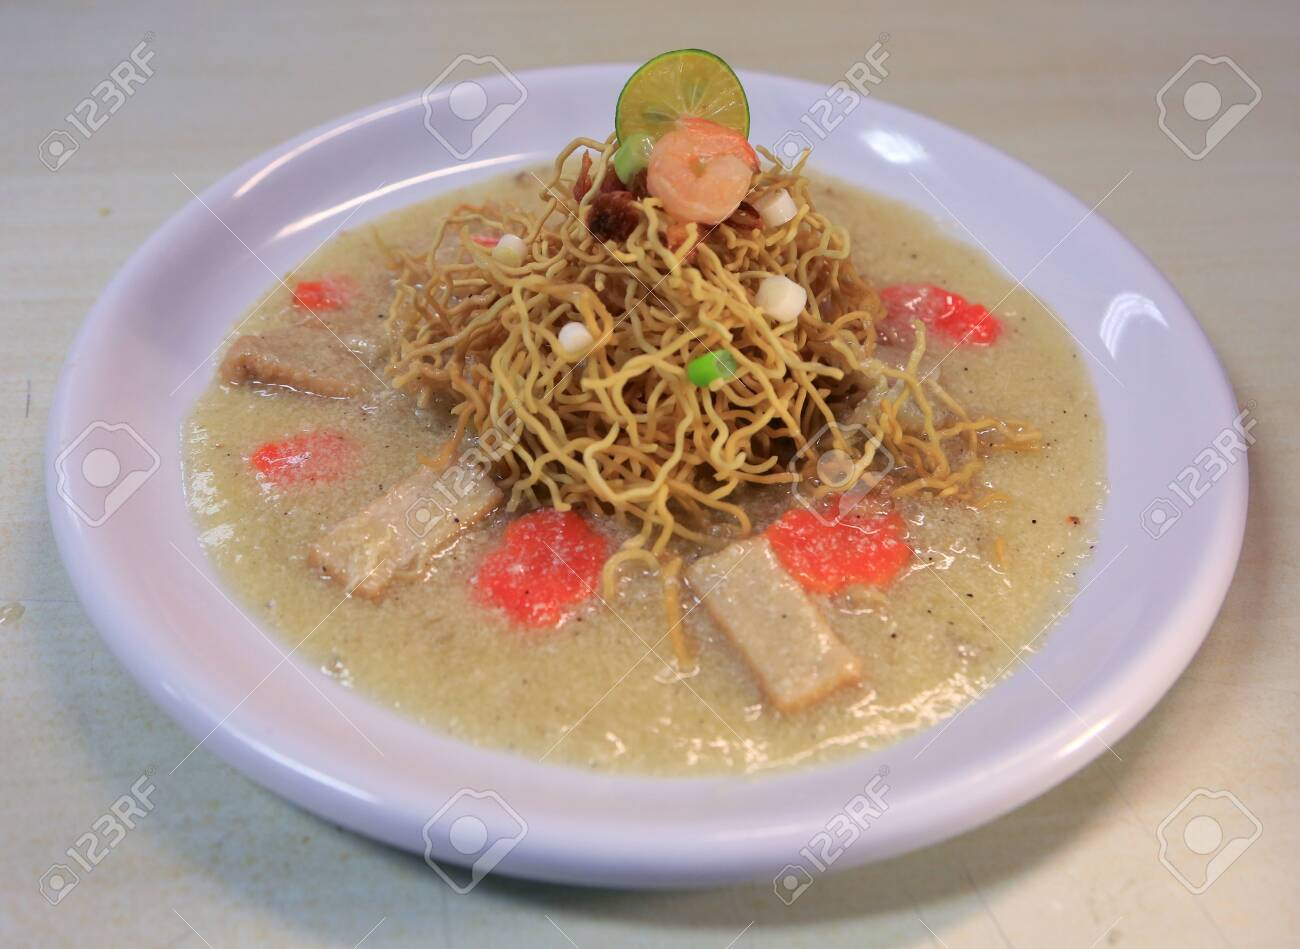 Mie Titi Khas Makasar Makassar Typical Titi Noodle Dish Stock Photo Picture And Royalty Free Image Image 132574965